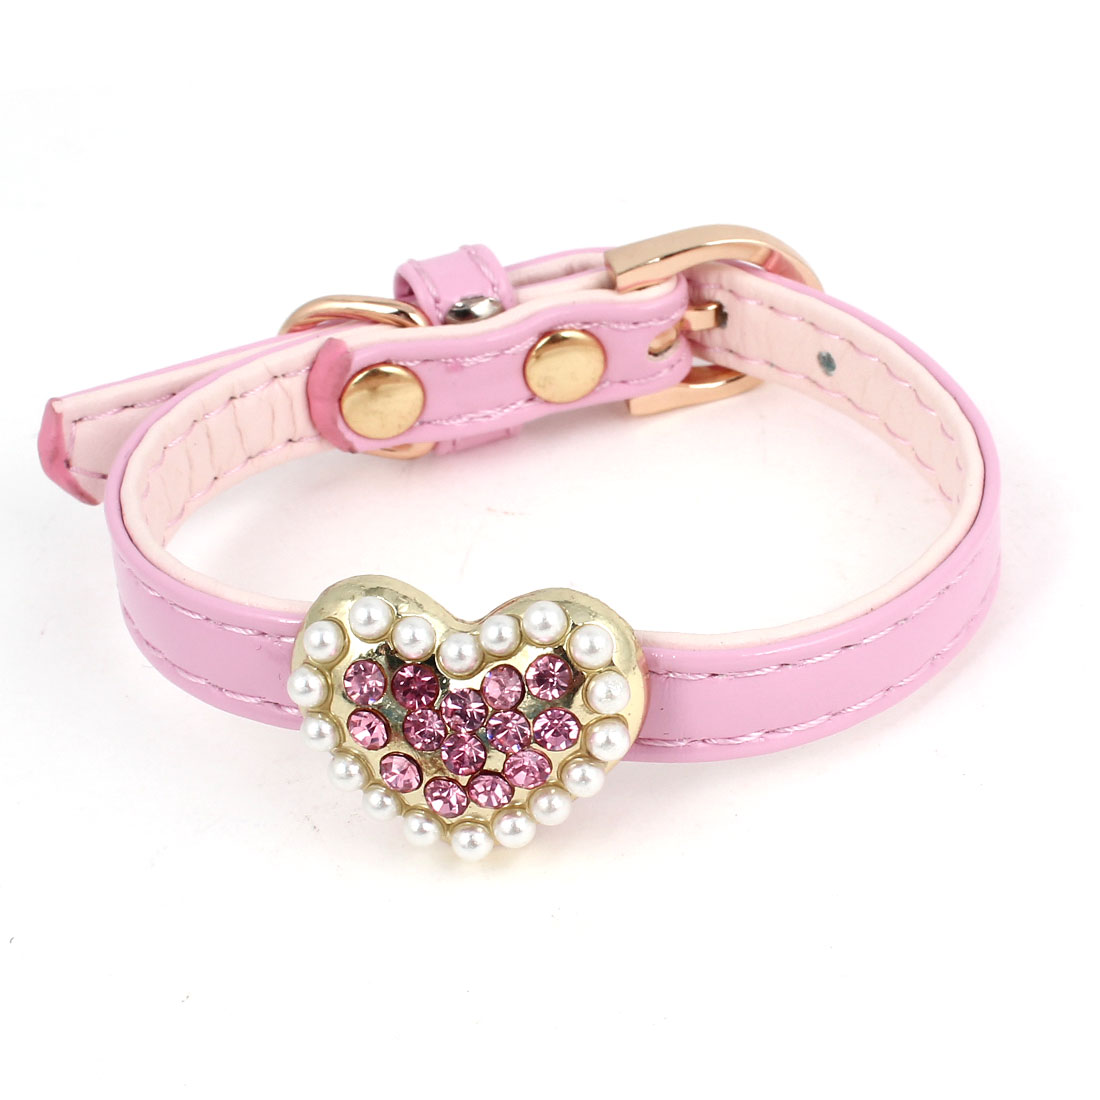 Pink Faux Leather Single Pin Buckle Adjustable Pet Dog Doggy Collar Necklace w Label